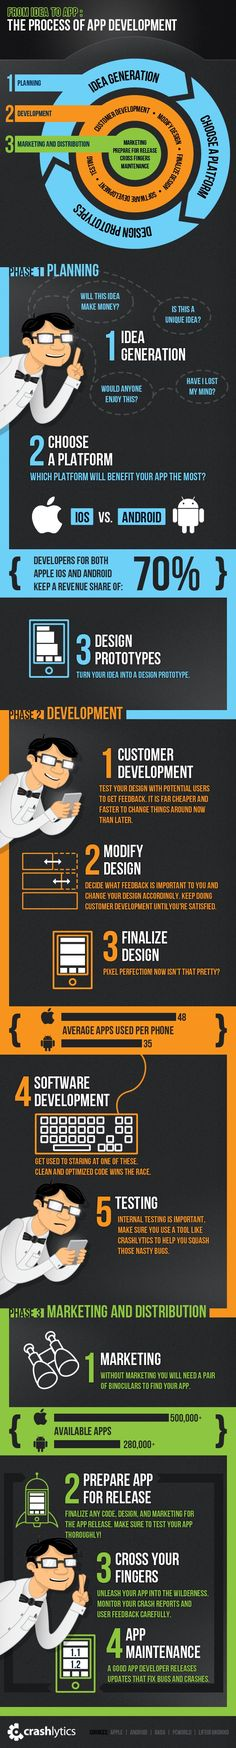 Here's an infographic to showcase the amazing process that app developers go through. It goes from their initial idea to getting the app directly into